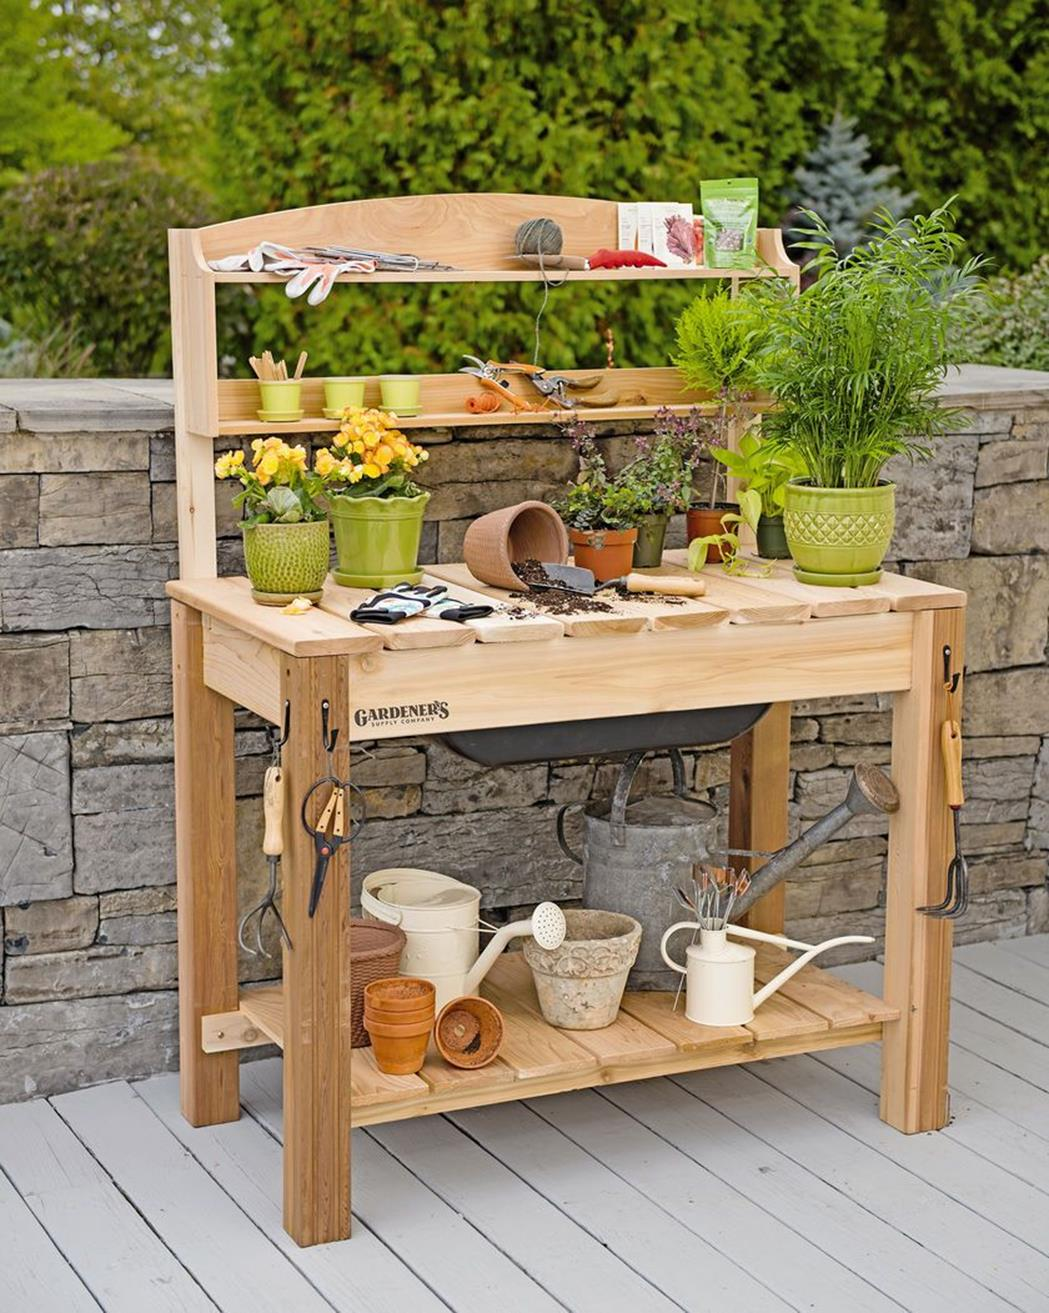 Outdoor Garden Potting Bench Design Ideas 13